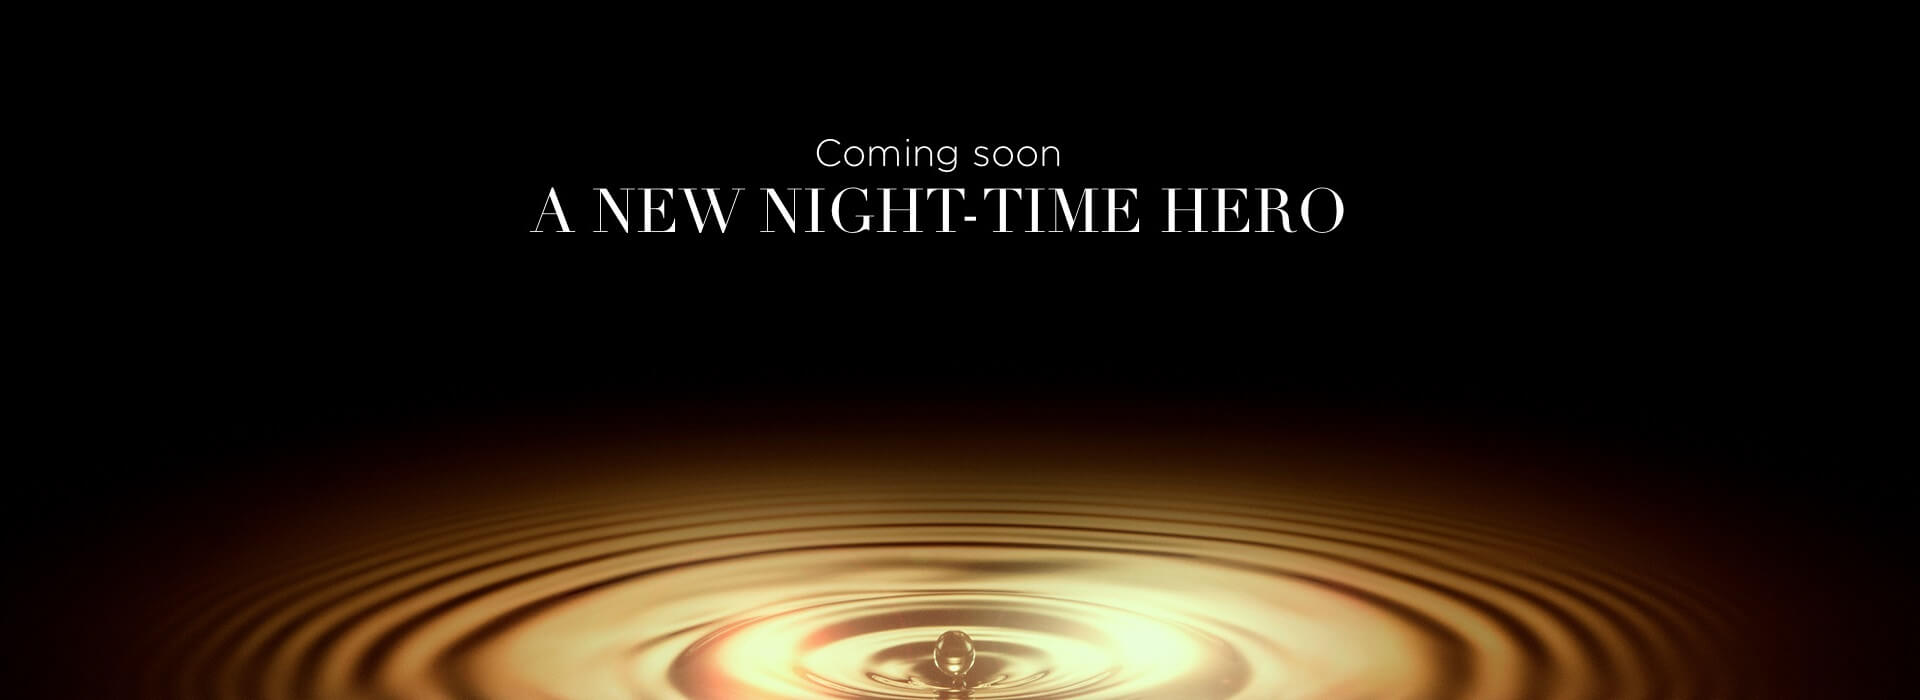 Coming soon, a new nighttime hero